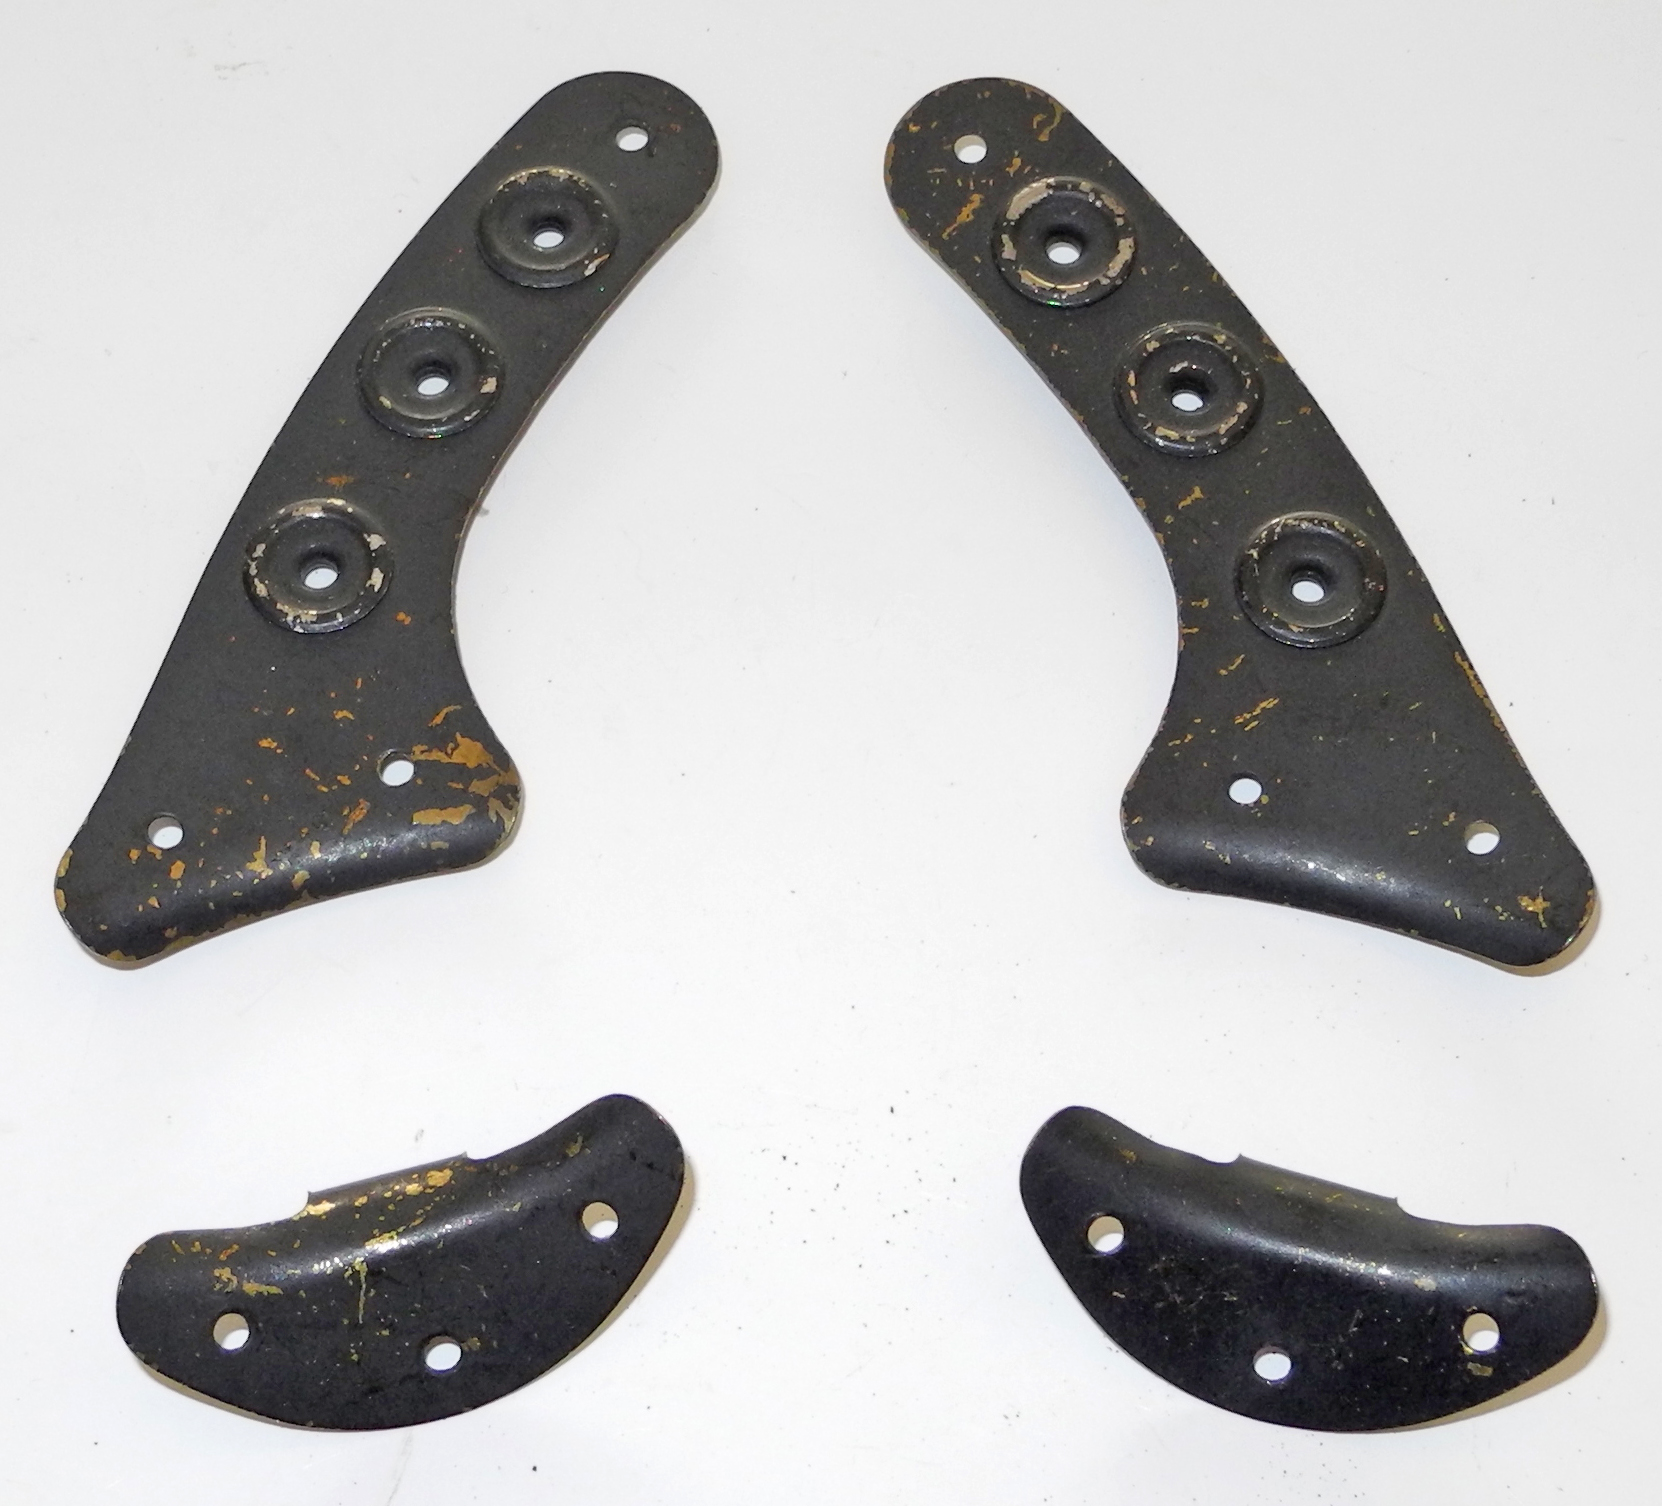 RAF Guide Plates for Mk IV Goggles